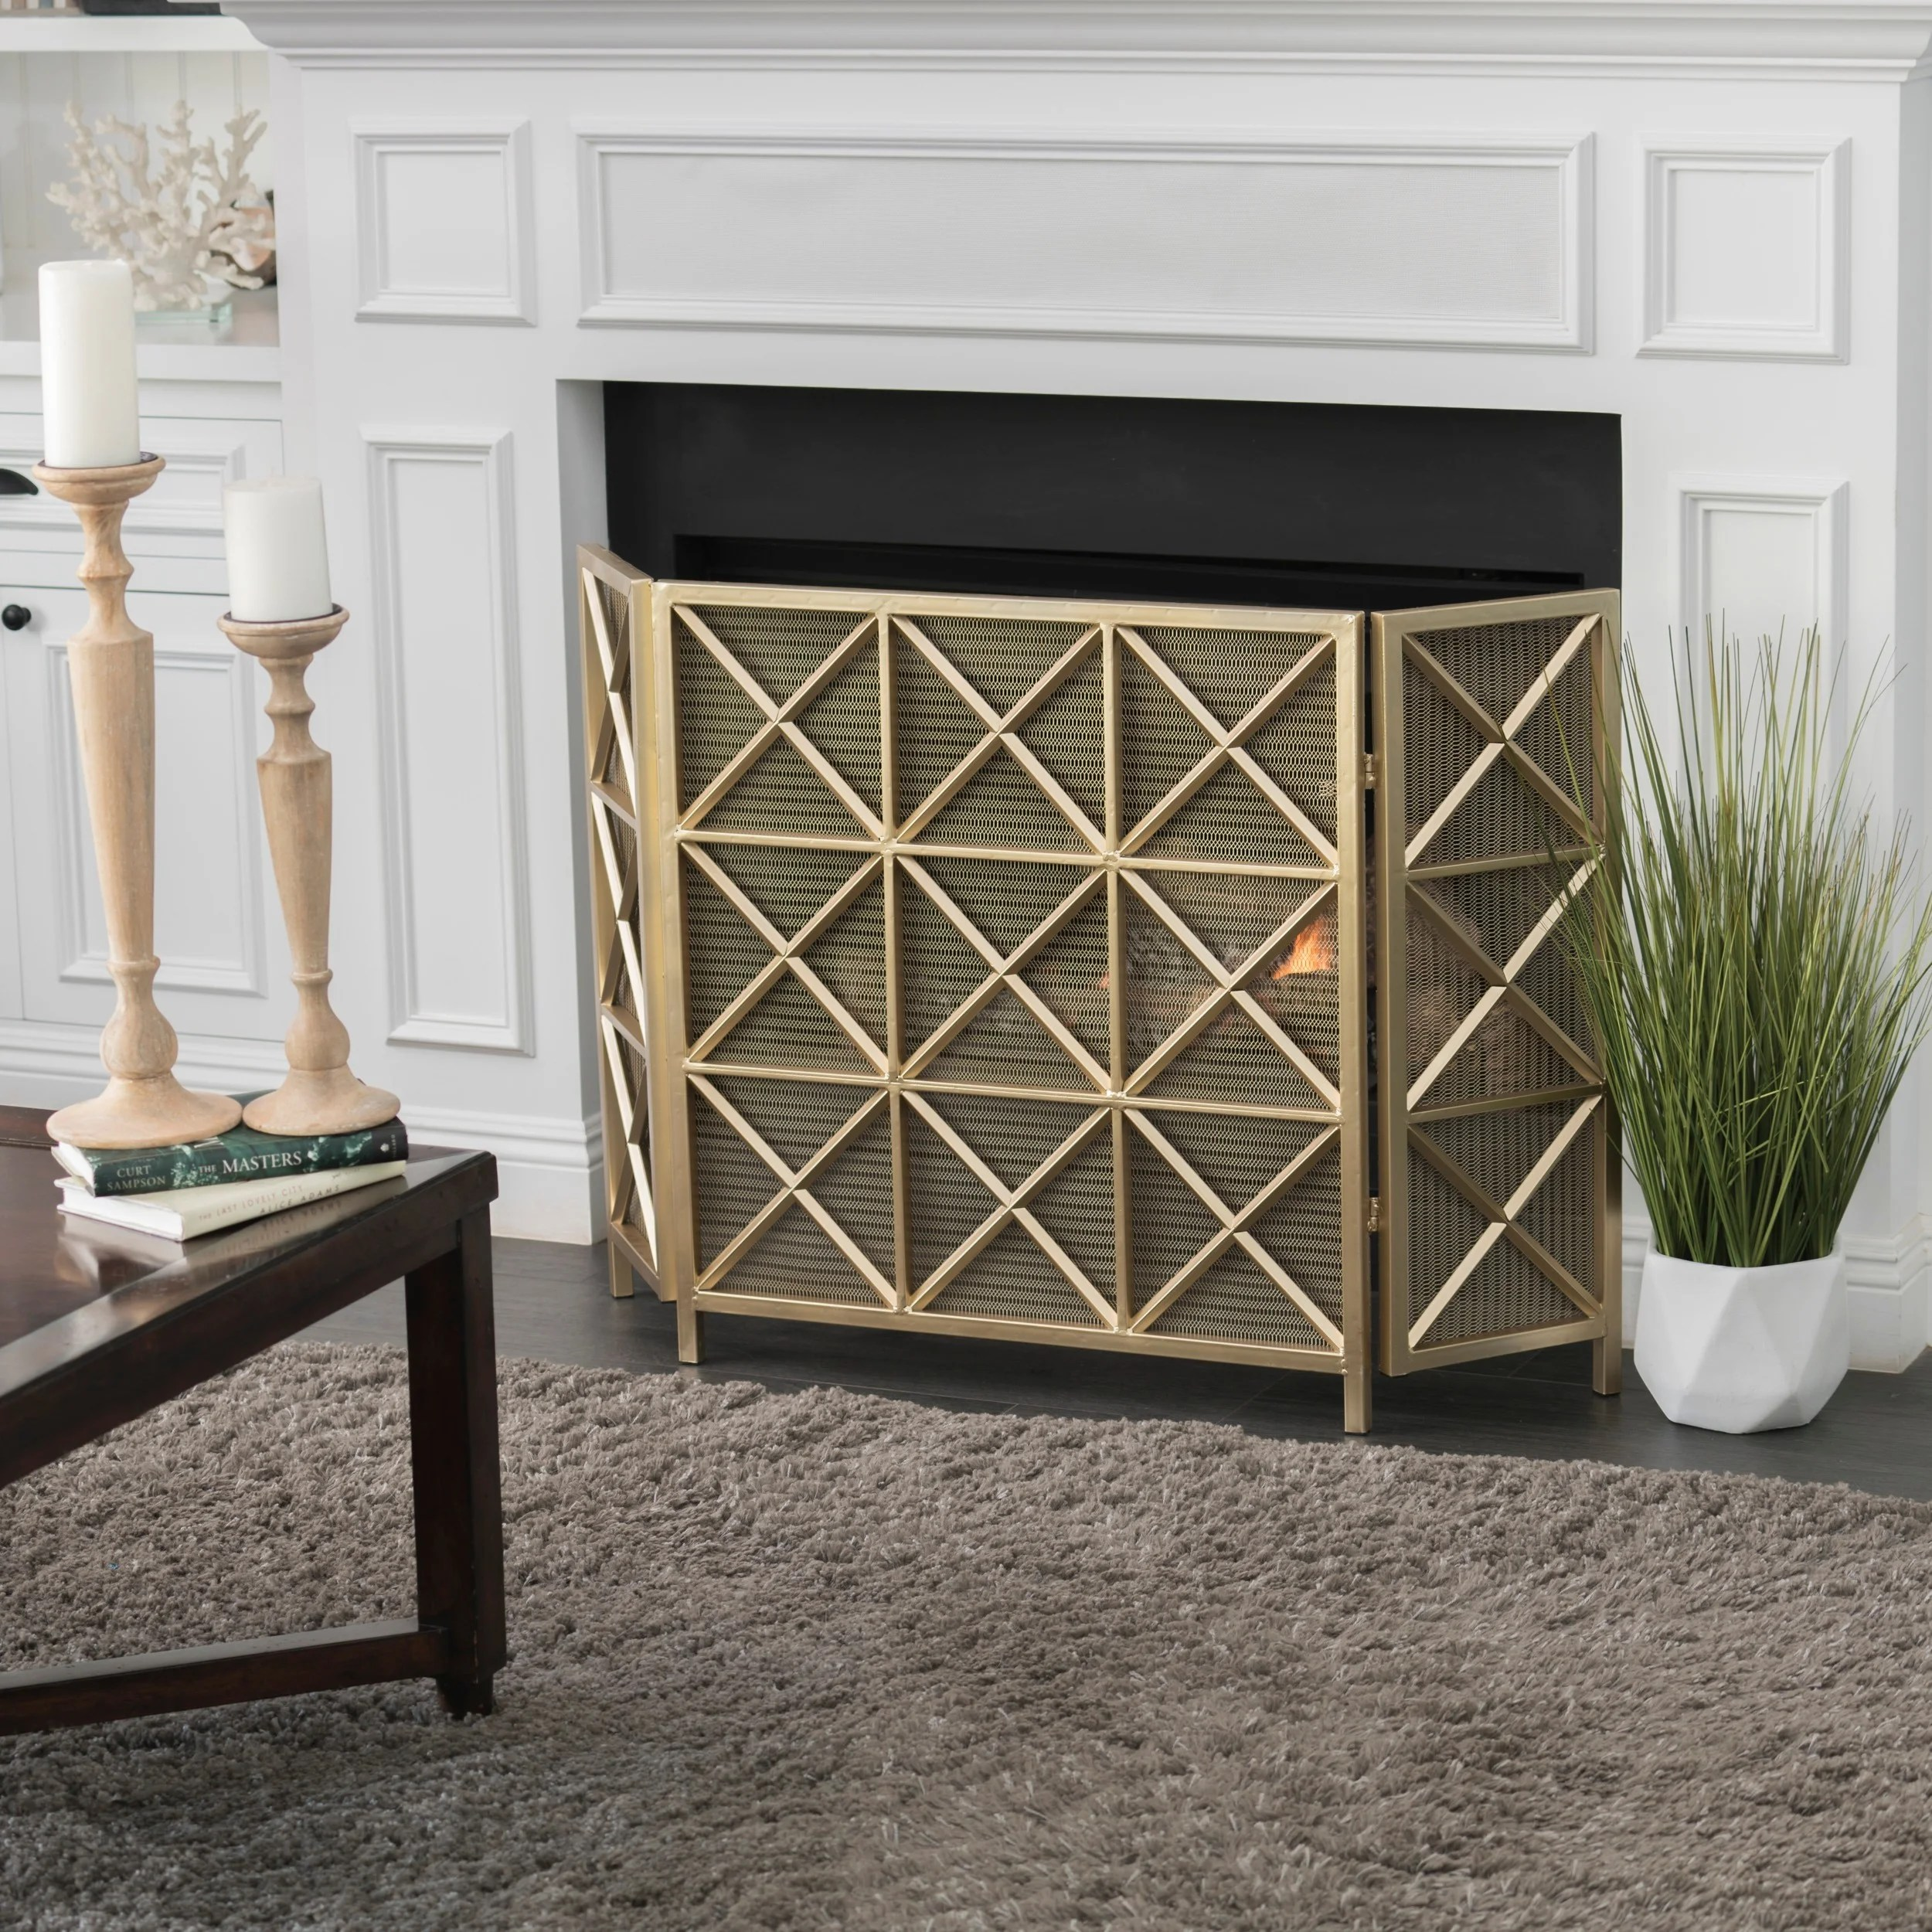 Small Fireplace Screens Under 30 Wide Buy Room Dividers Decorative Screens Online At Overstock Our